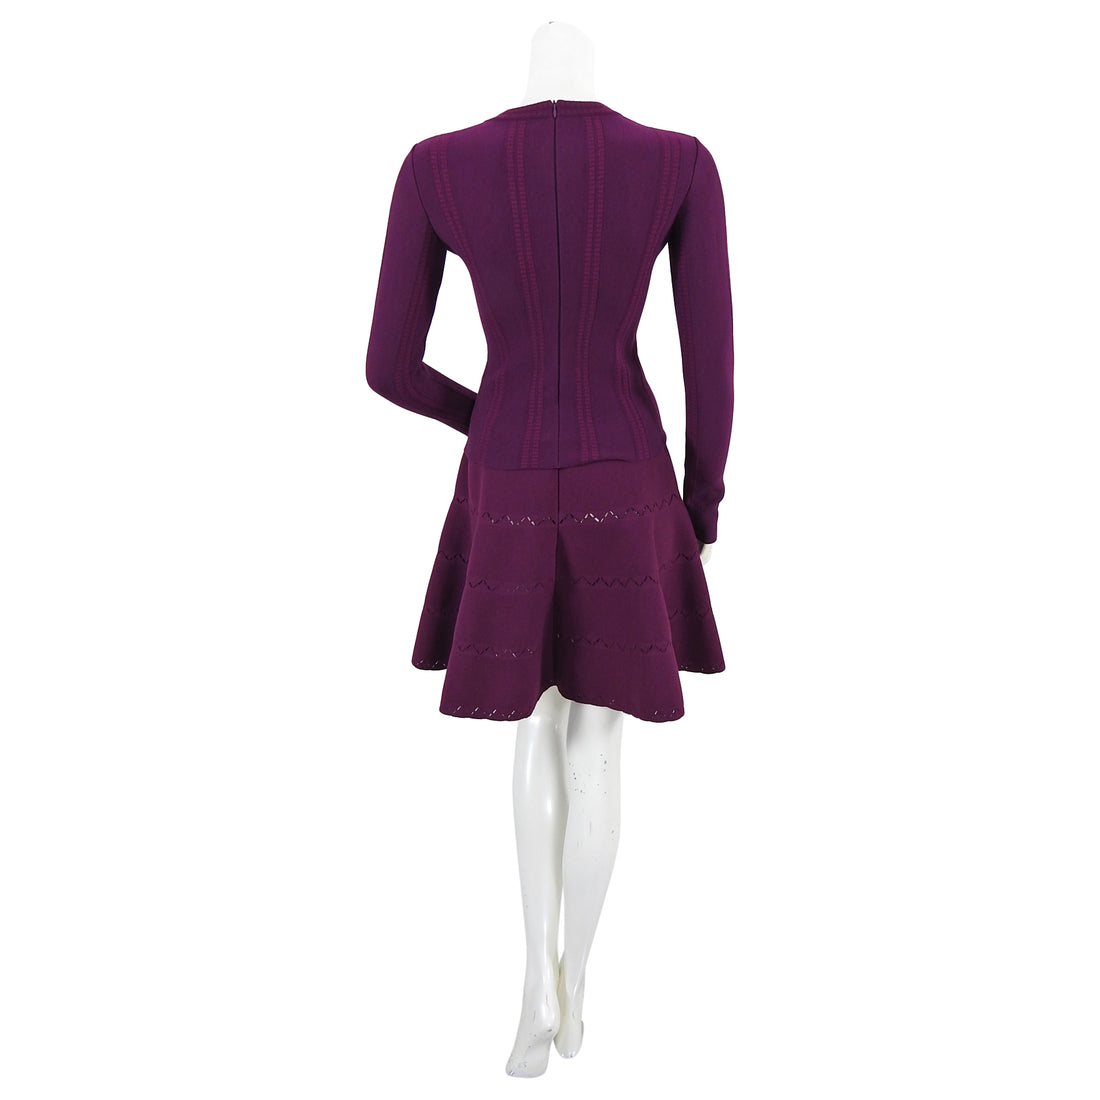 Alaia Purple Wool Knit Jersey Mini Skirt and Top Set - XS / 2 / 4